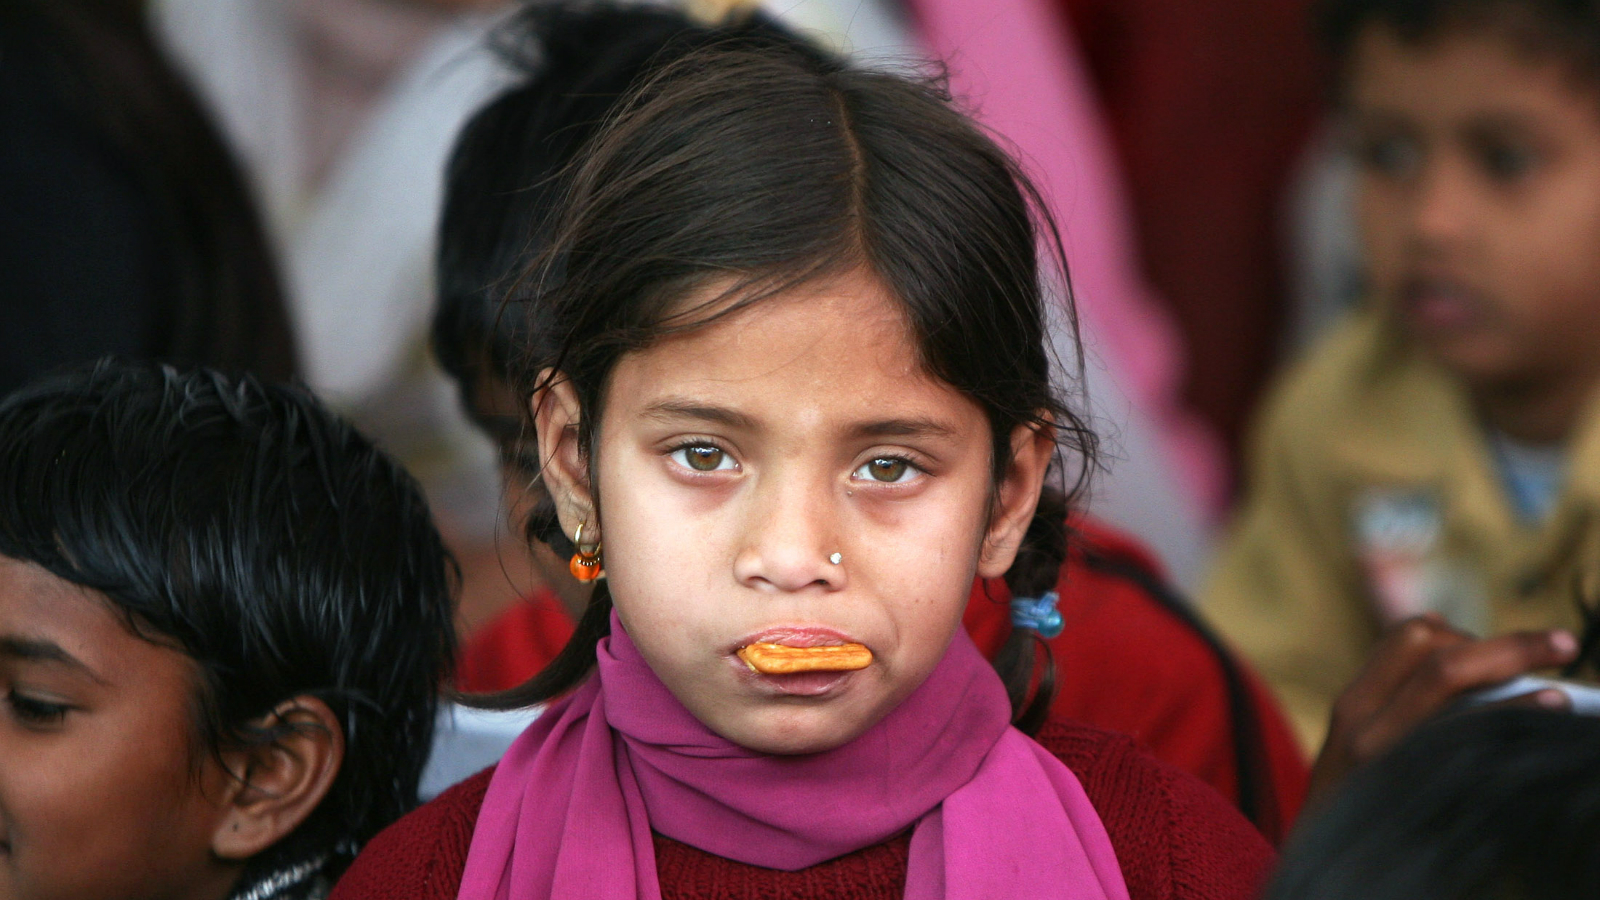 A rescued child labourer eats a biscuit during a protest march in New Delhi February 17, 2010. Hundreds of rescued labourers on Wednesday participated in the march demanding the government to allocate 6 percent of the country's GDP on education and to avoid privatisation of education, according to the organizers.